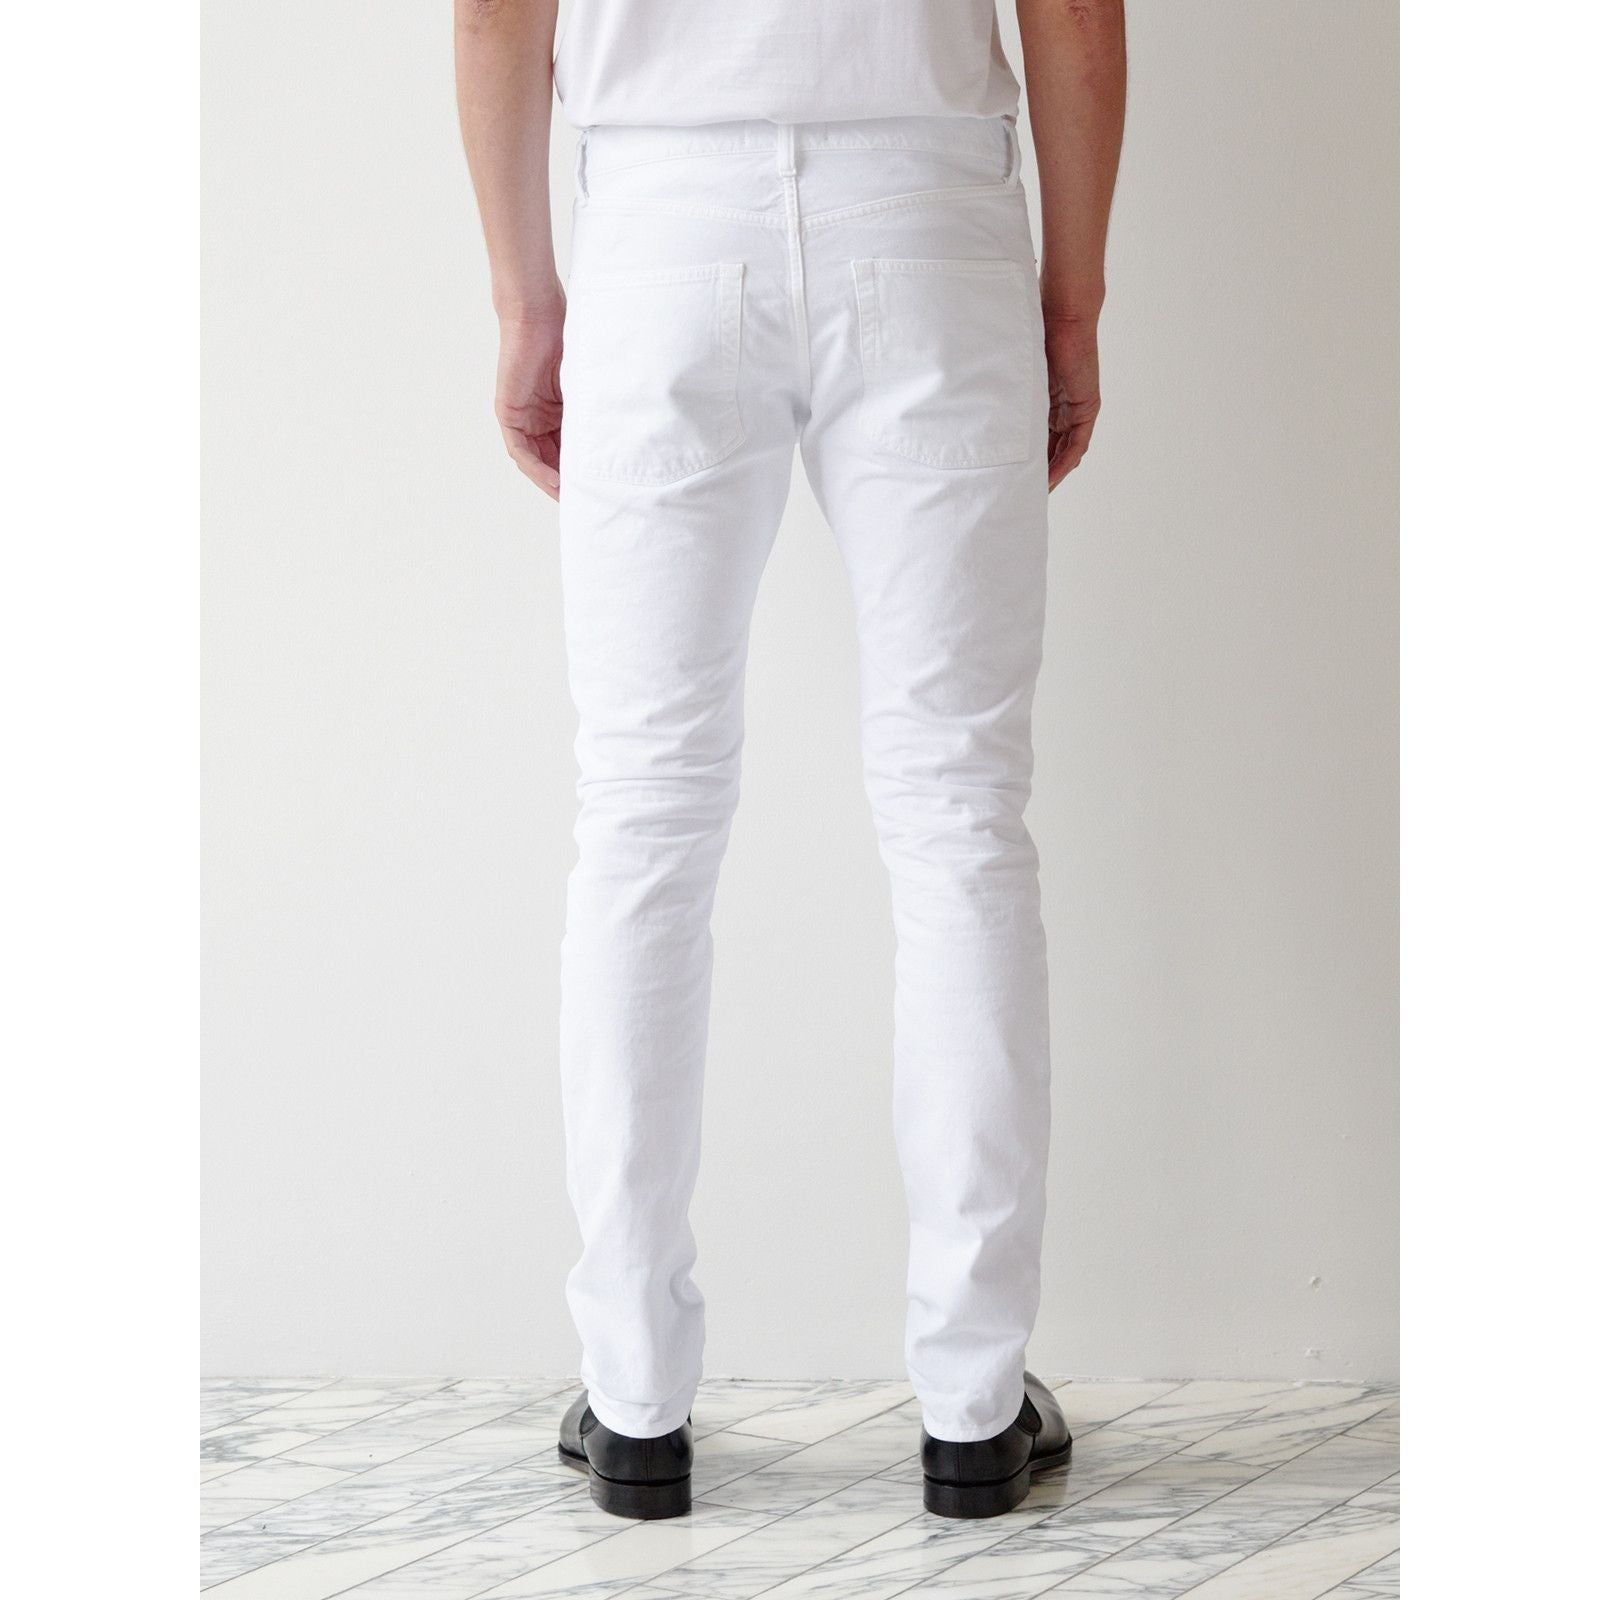 LEWITT regular slim fit jeans